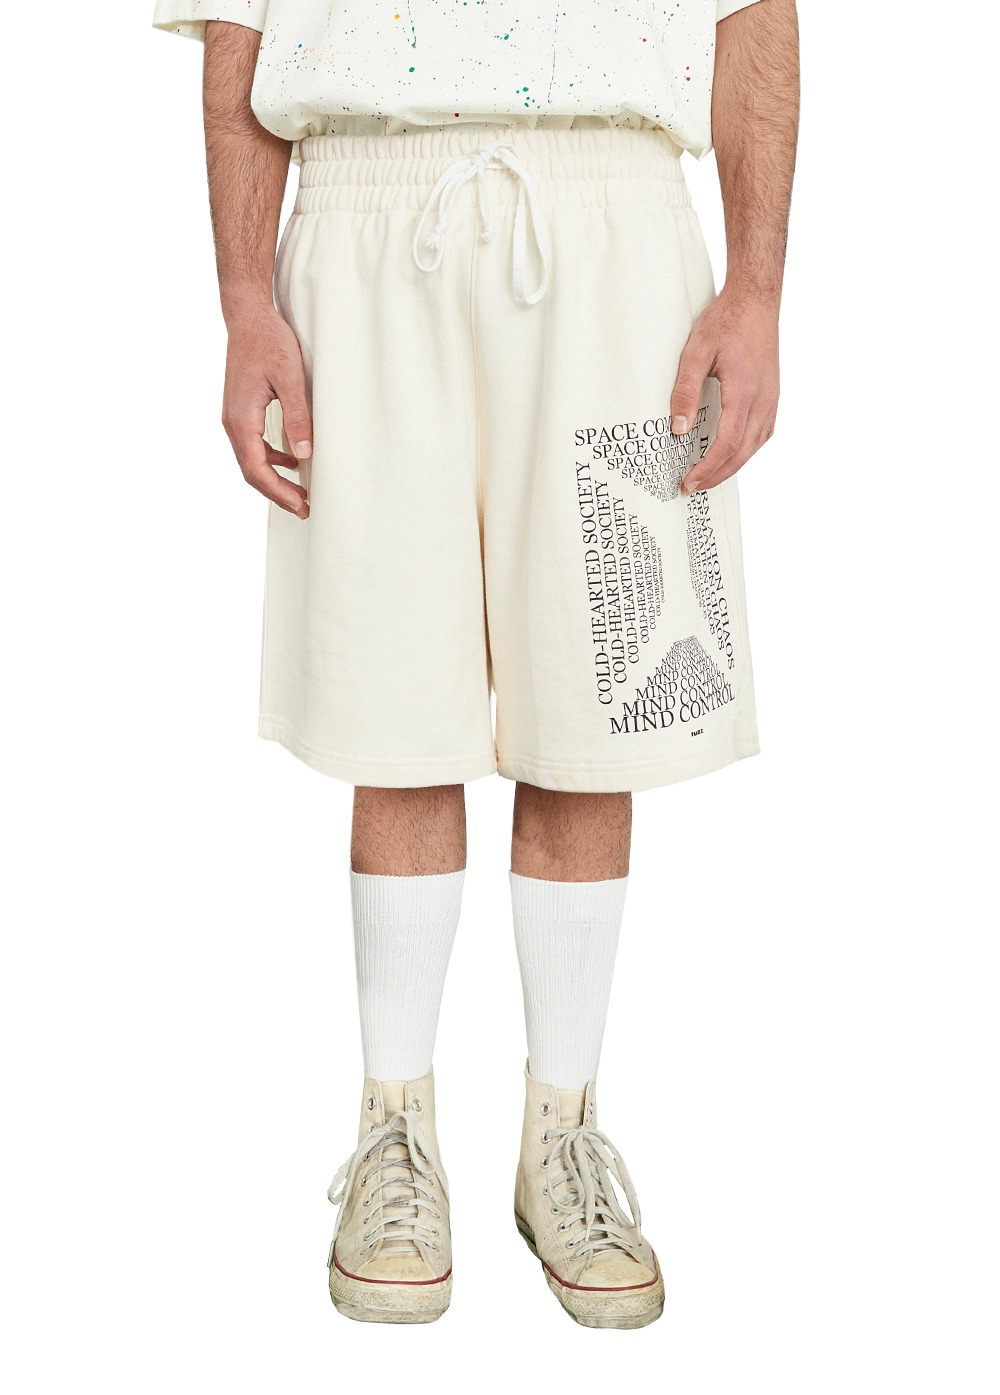 FUZZ MINDCONTROL SWEAT SHORTS cream